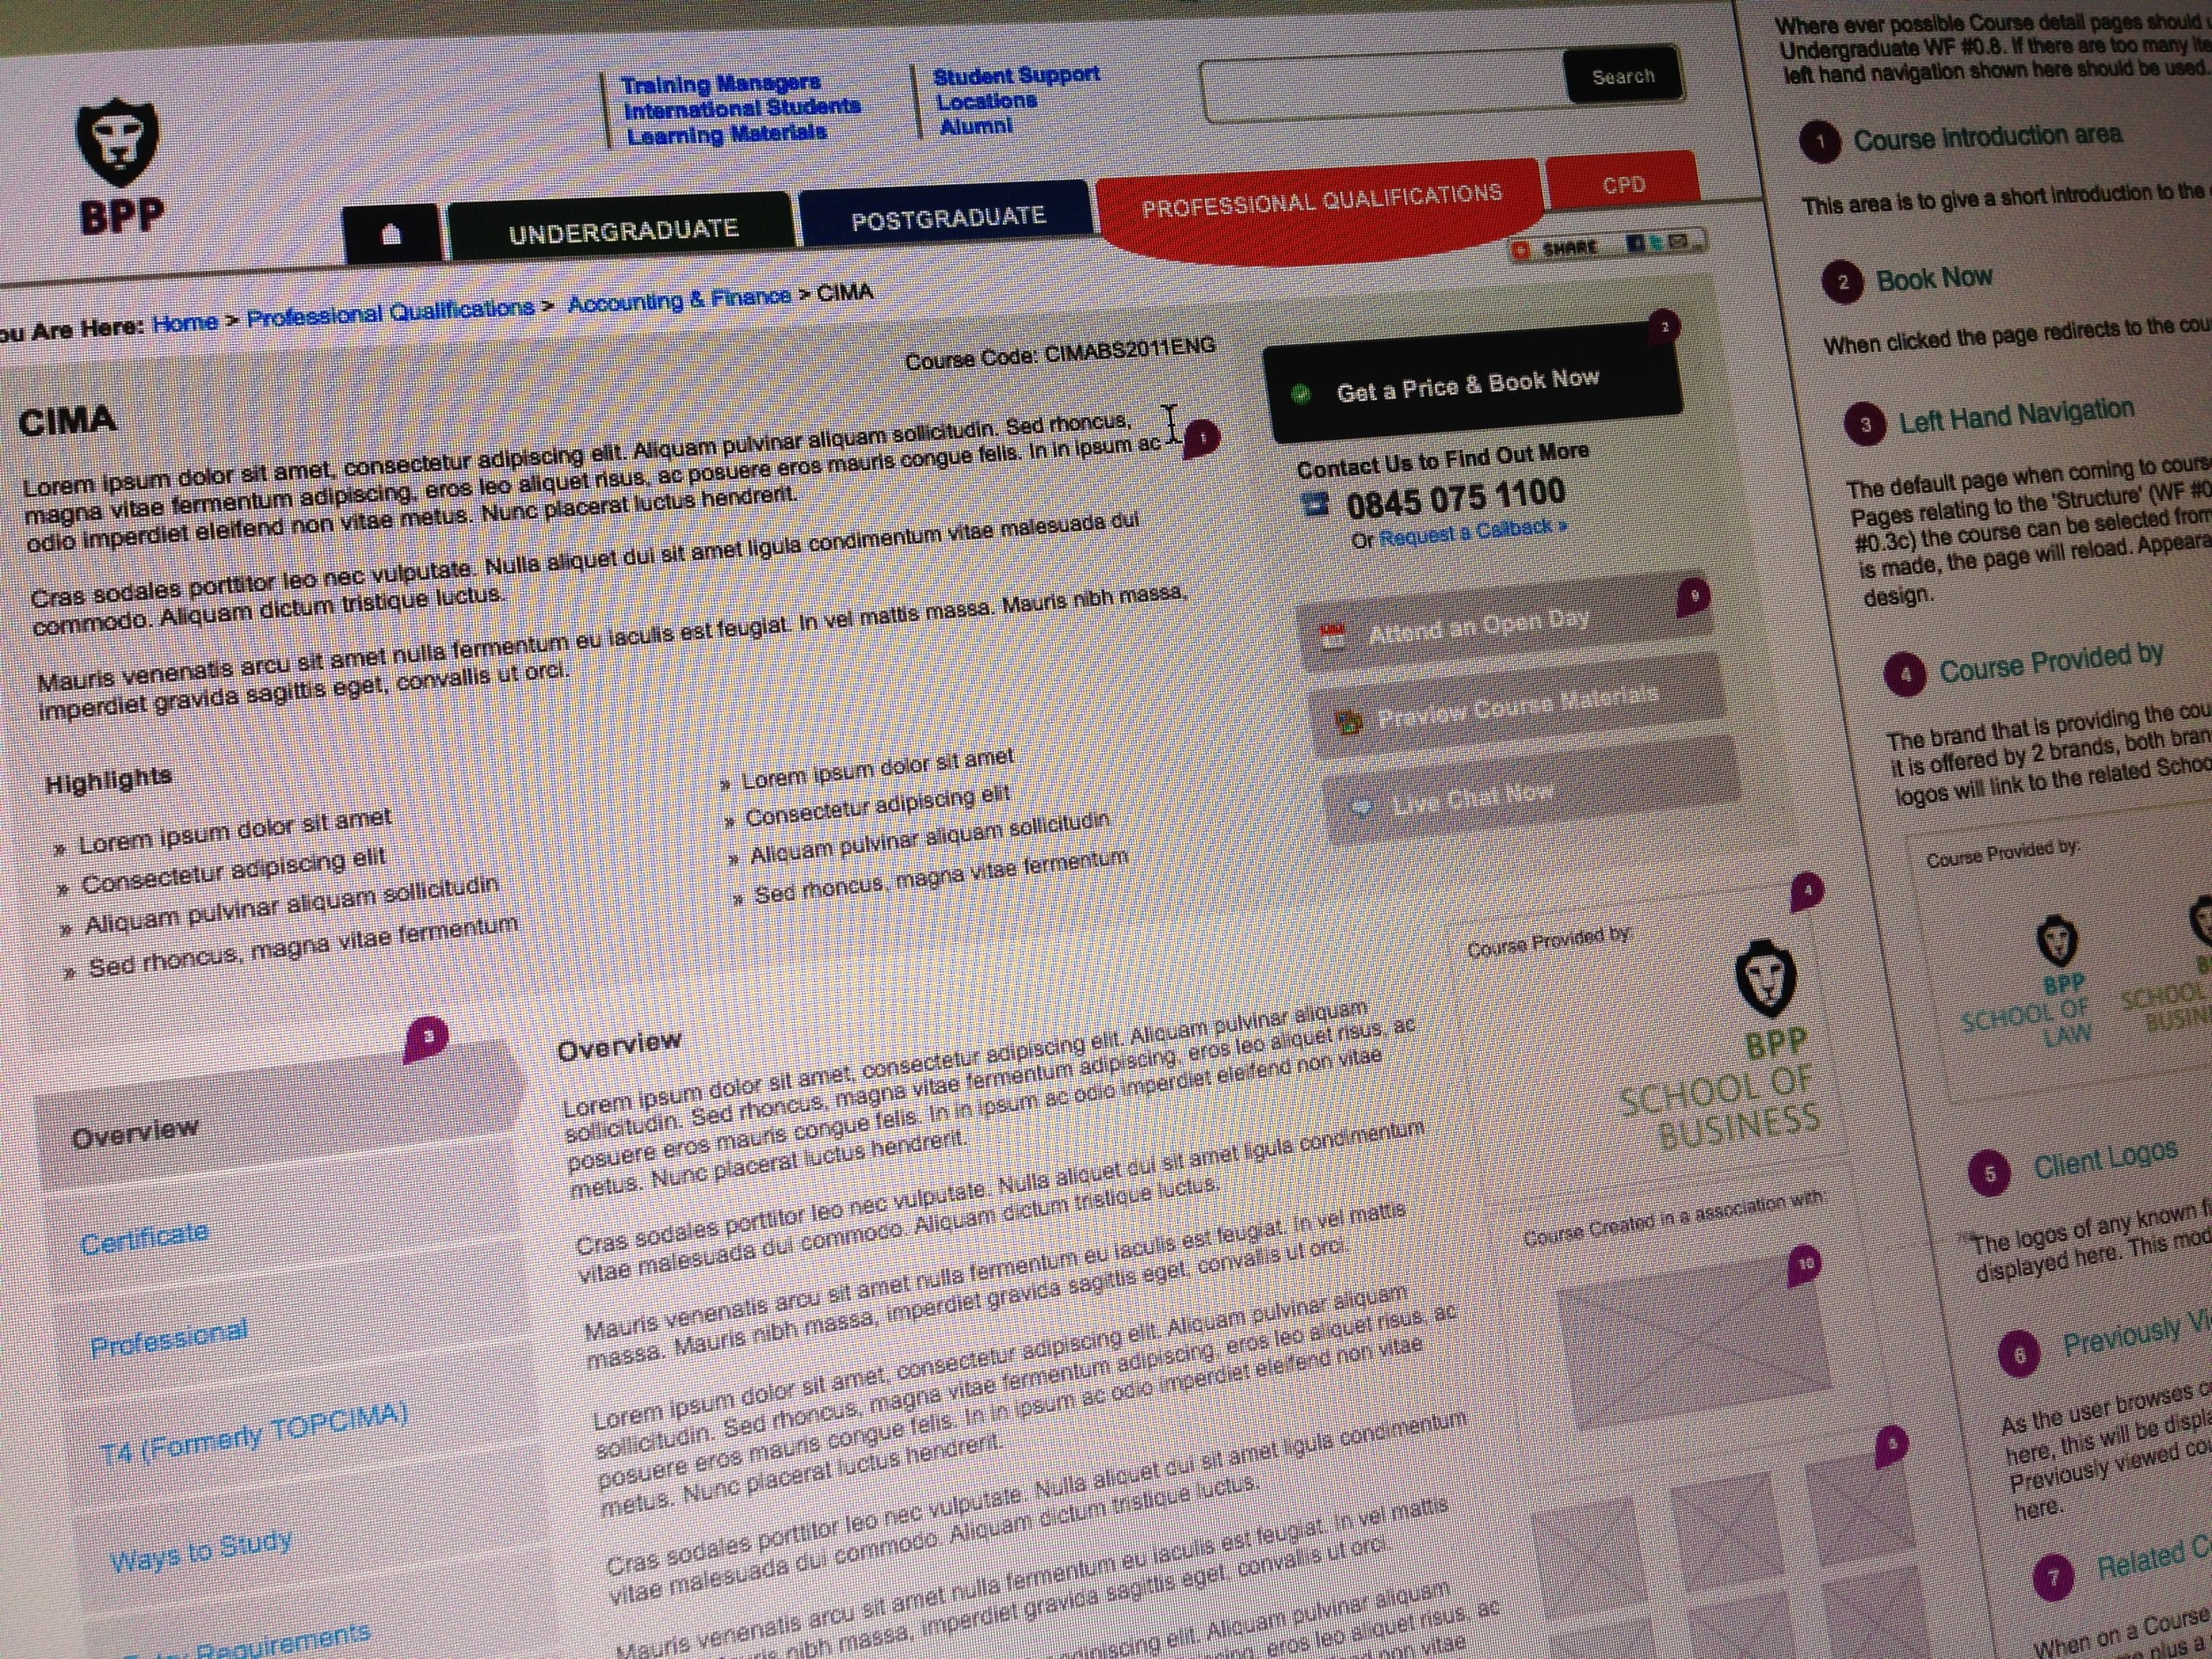 Course Details Page - Wireframe